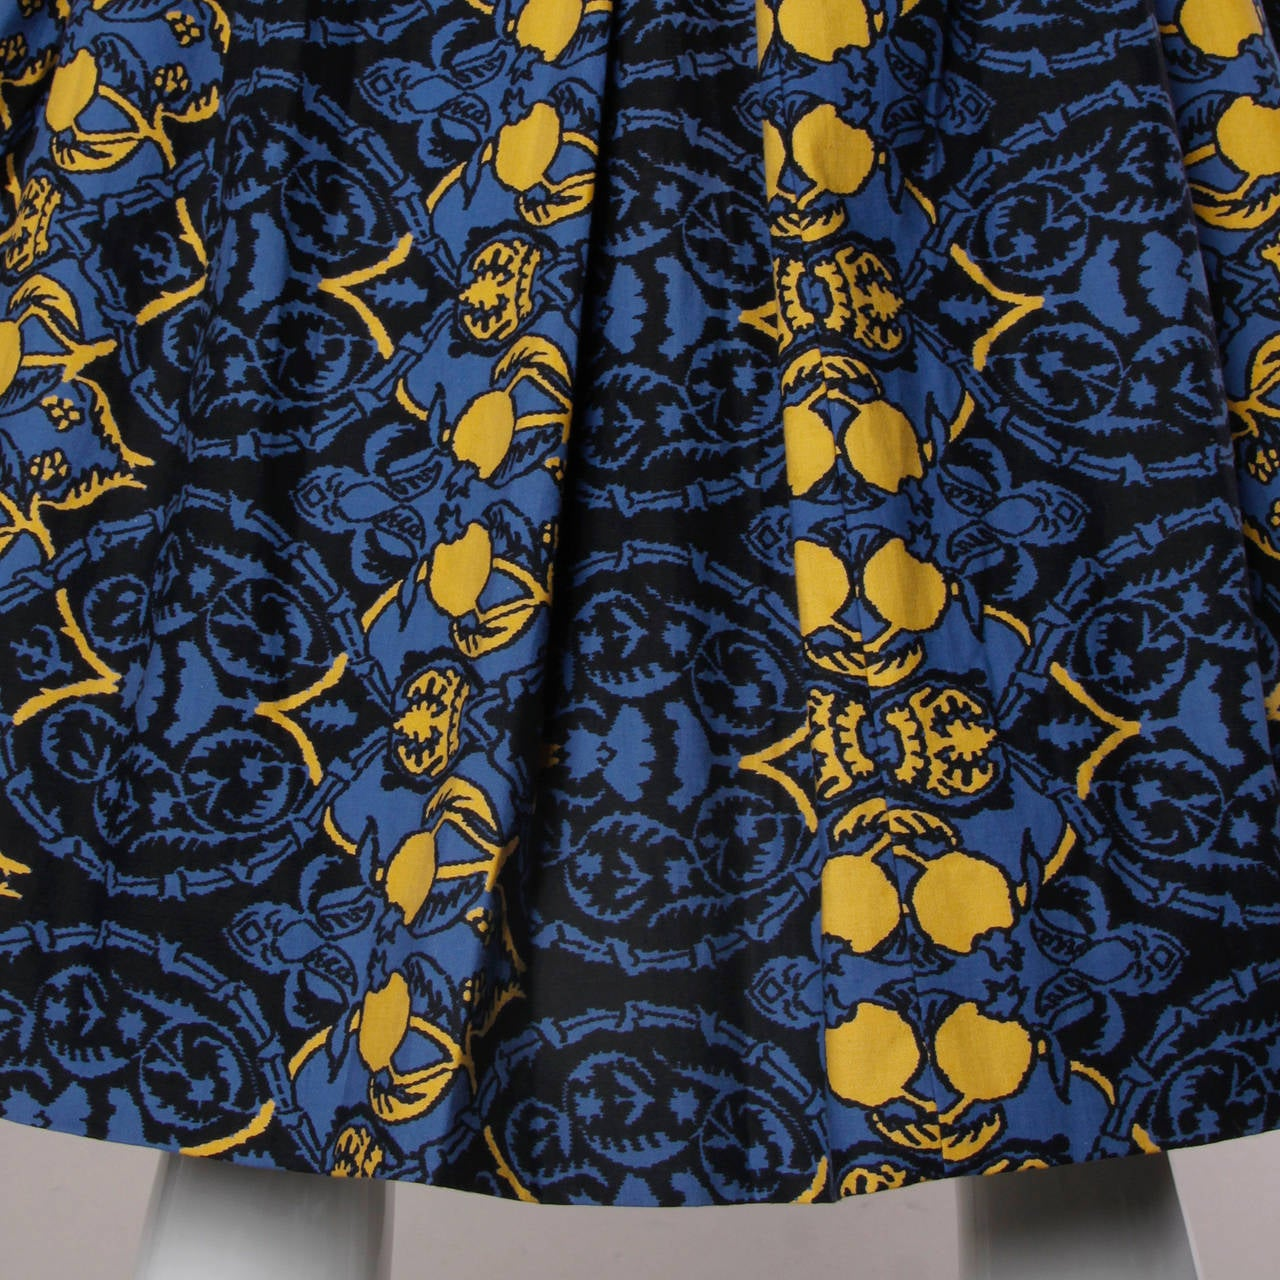 1950s Vintage French Custom Provincial Printed Cotton Dress 4